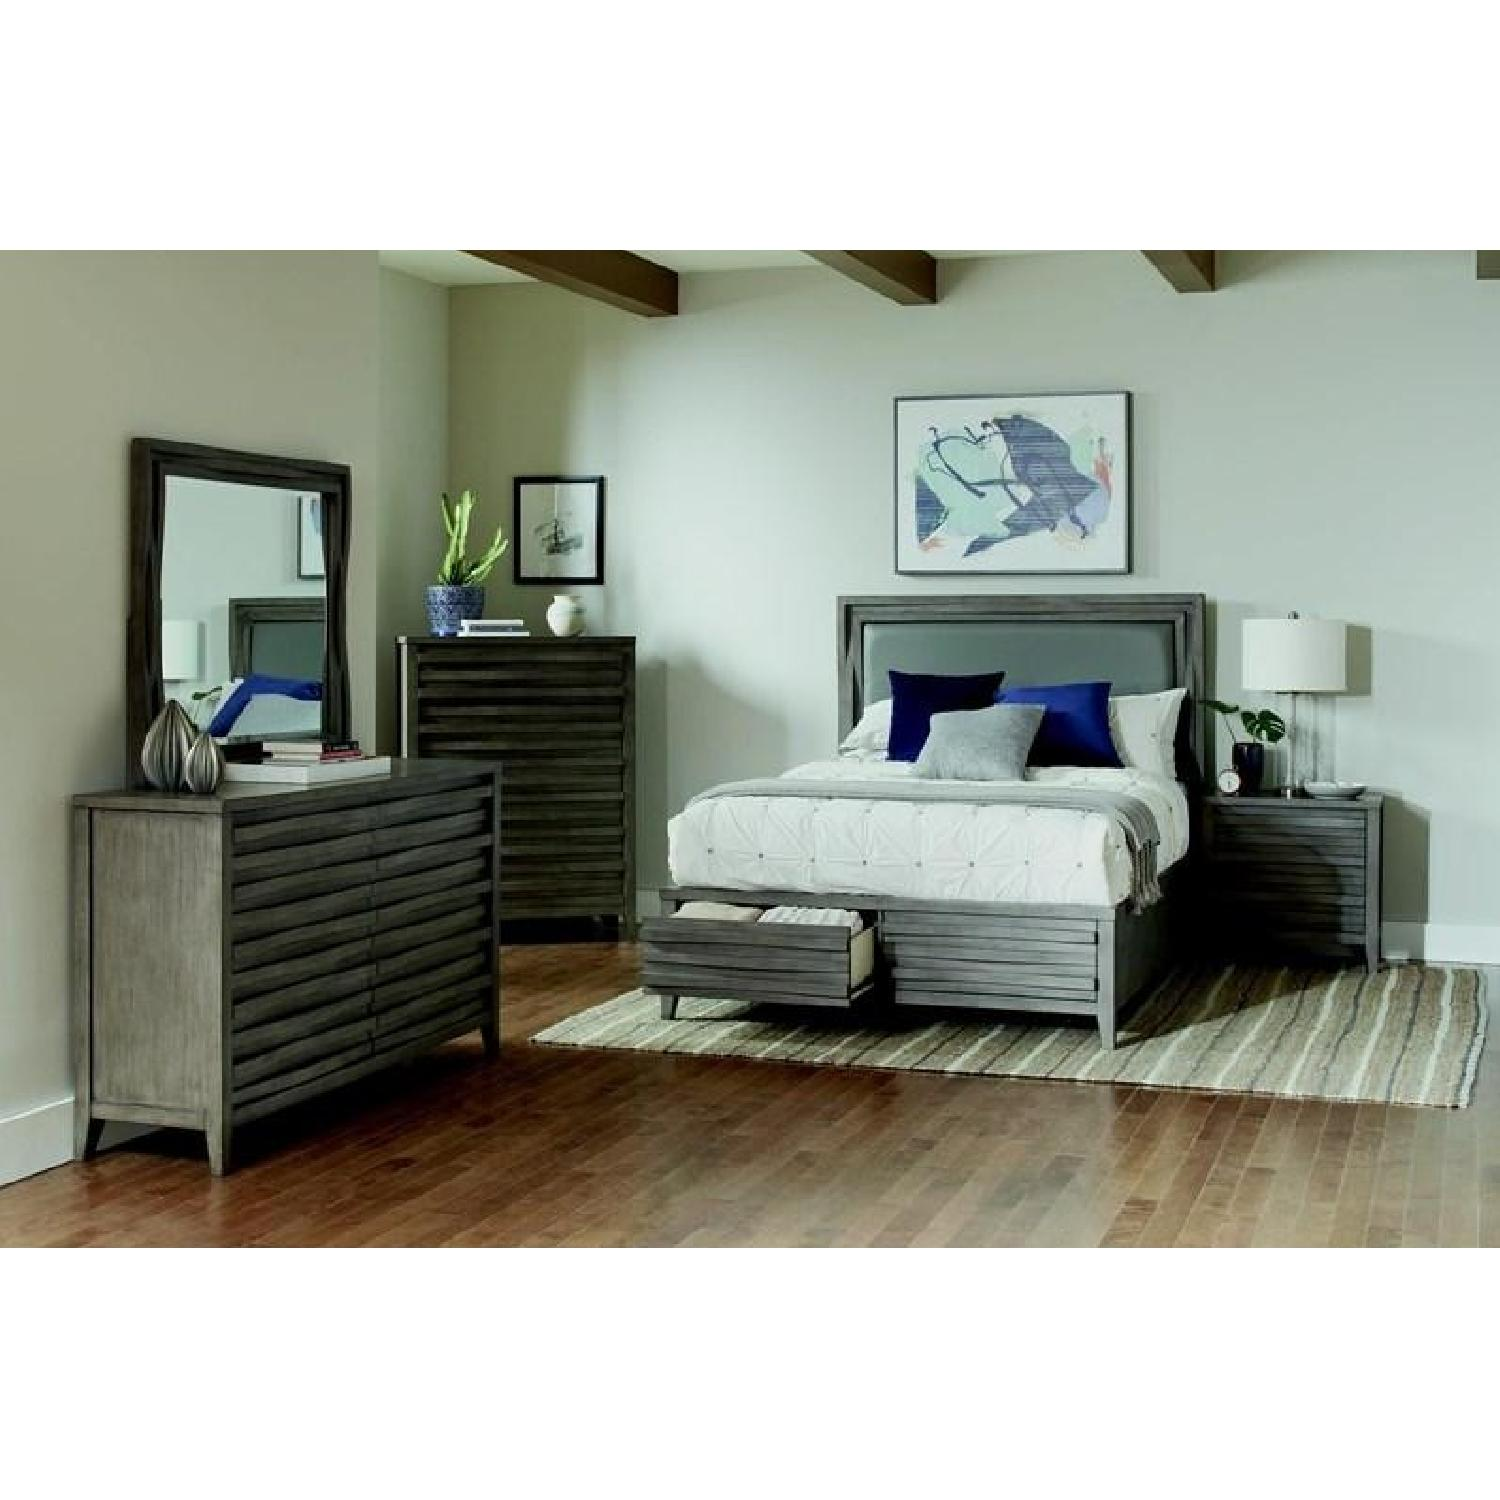 King Bed in Dark Taupe w/ 2 Storage Drawers - image-1